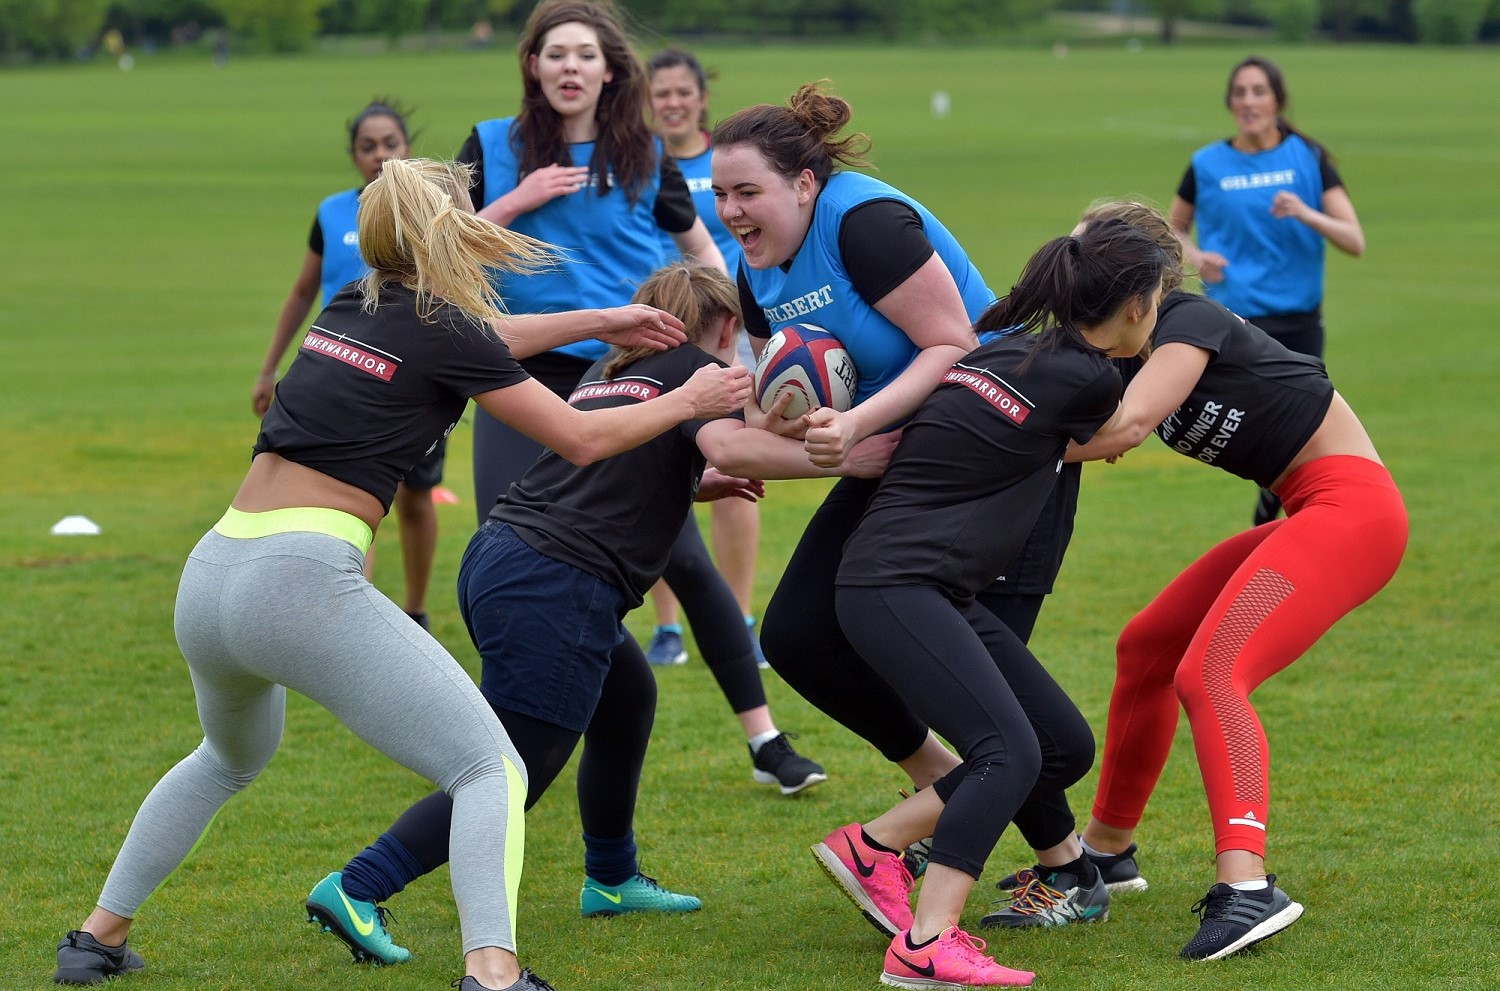 Lessons in badassery - England Rugby Warrior Camps are Back!